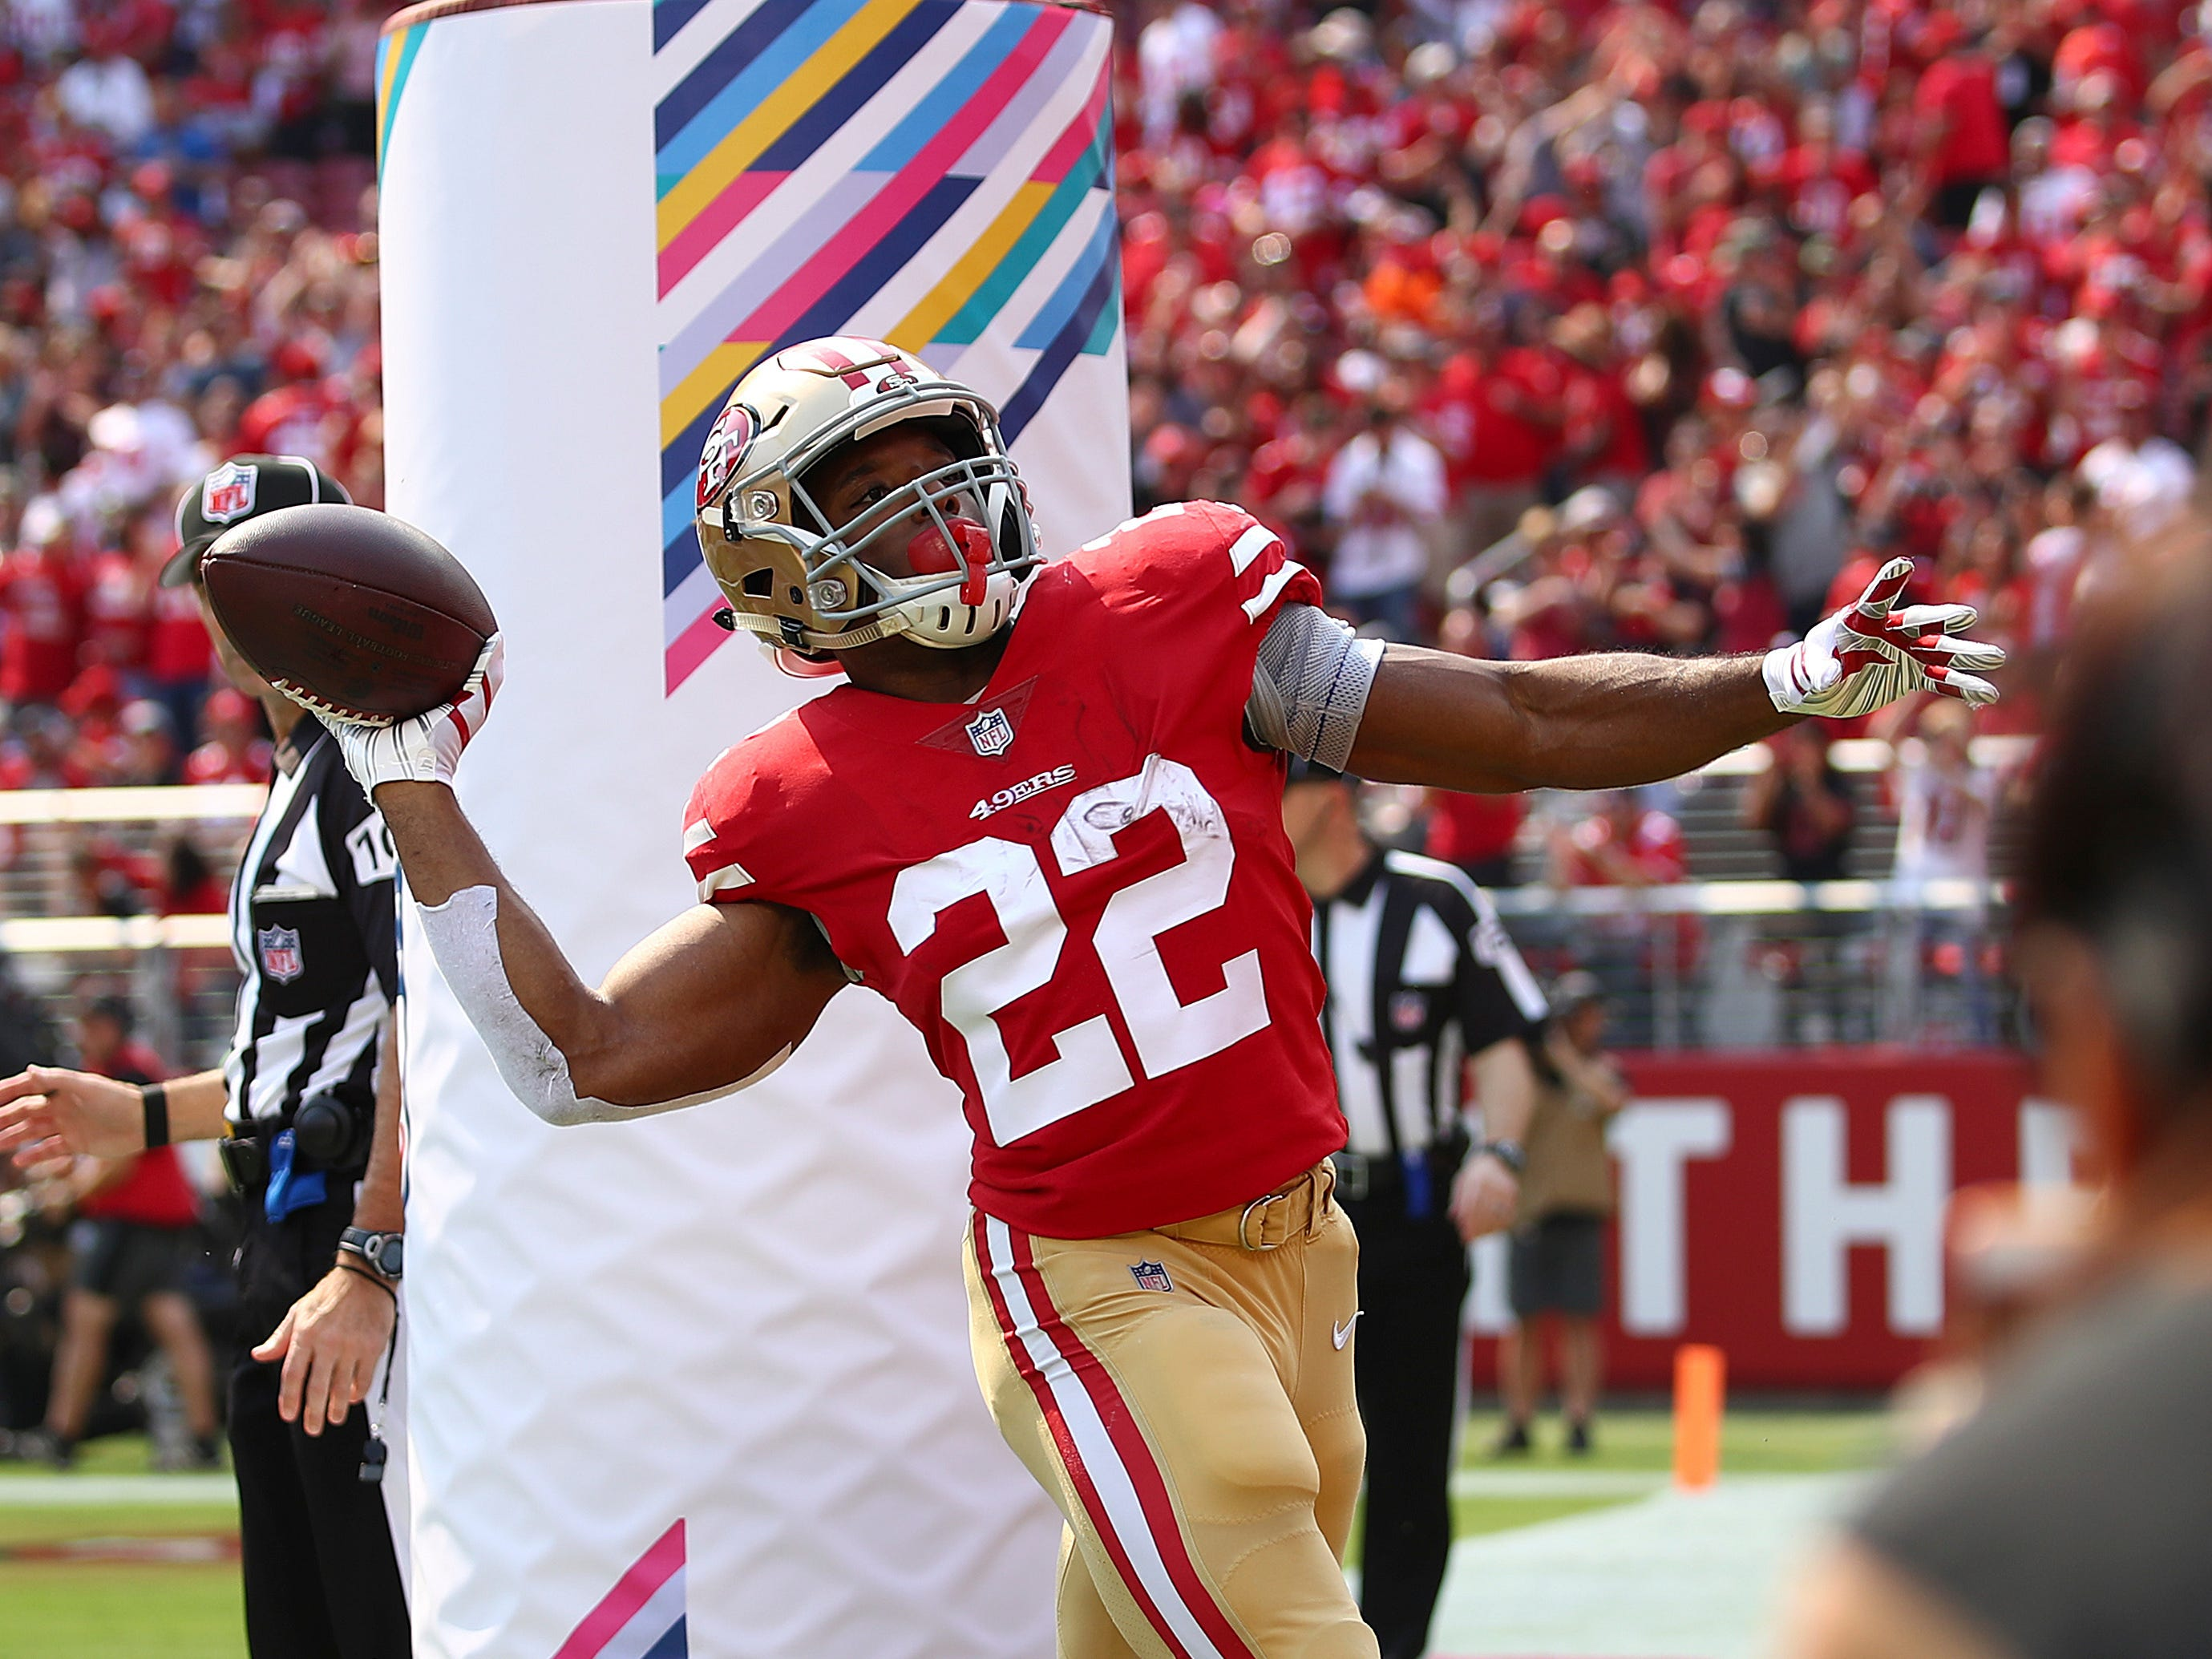 San Francisco 49ers running back Matt Breida (22) celebrates after scoring a touchdown against the Arizona Cardinals during the first half of an NFL football game in Santa Clara, Calif., Sunday, Oct. 7, 2018.